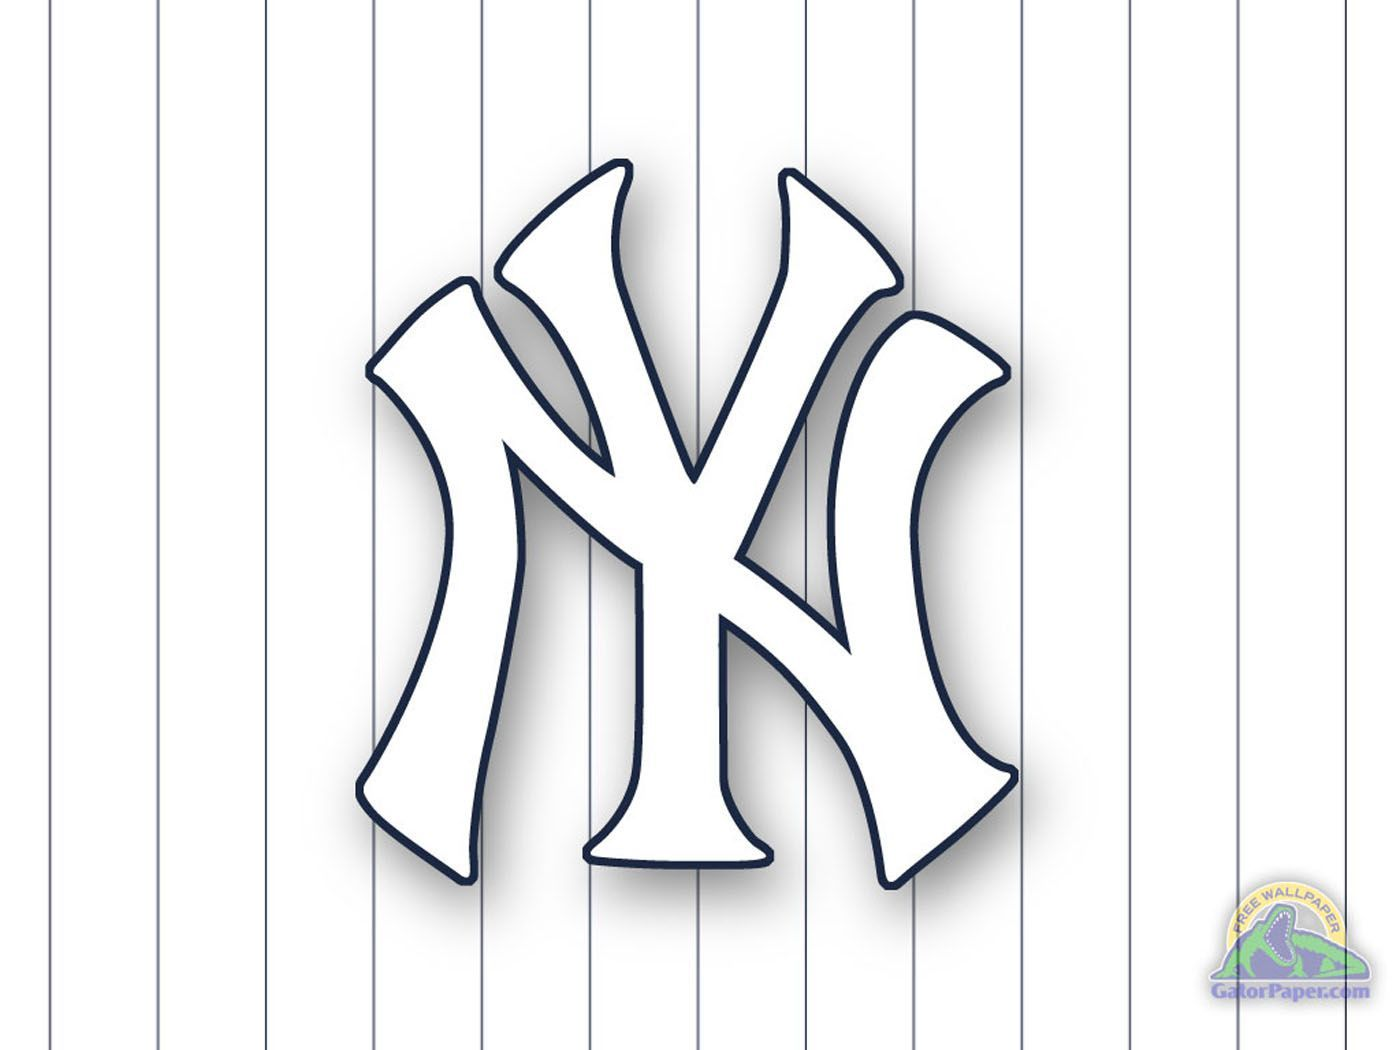 Yankees Wallpaper 1400 1050 Free Yankees Wallpapers 37 Wallpapers Adorable Wallpapers Detailed Coloring Pages Coloring Pages New York Yankees